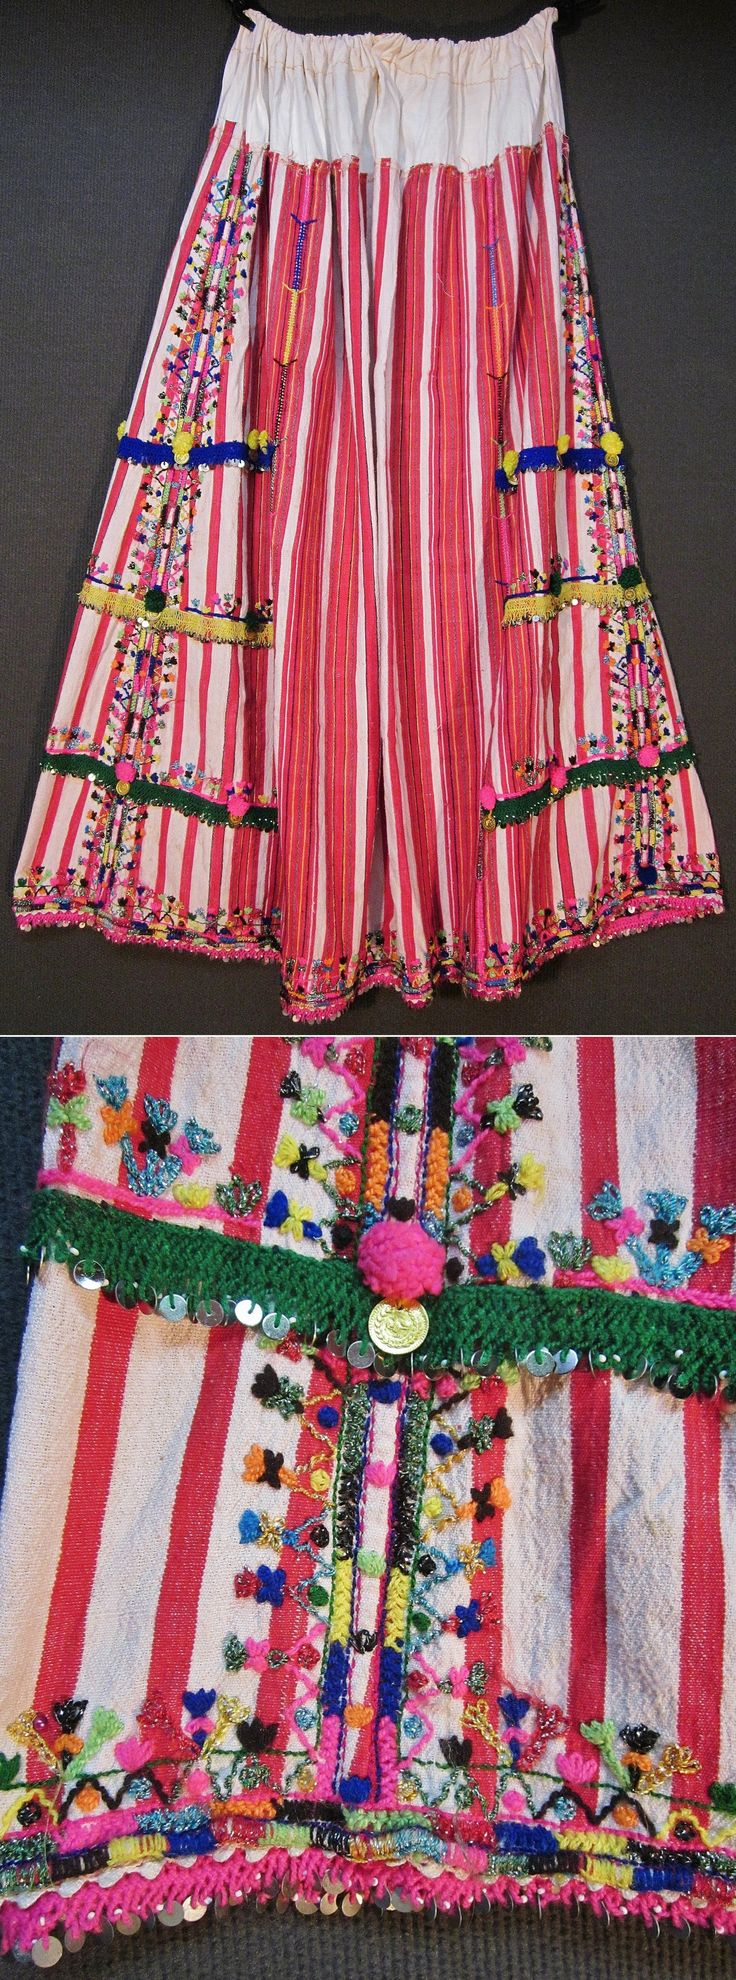 An embroidered 'etek' (skirt)  from the Pomak villages near Biga (Çanakkale prov.).  Part of the traditional festive costume for women.  Mid-20th century.  Adorned with (cotton & lurex threads) embroidery on cotton, cotton crochet lace with metal sequins, metal (imitation) Ottoman coins, and (cotton or orlon) pom-poms.  (Inv.nr. ete001 - Kavak Costume Collection - Antwerpen/Belgium).